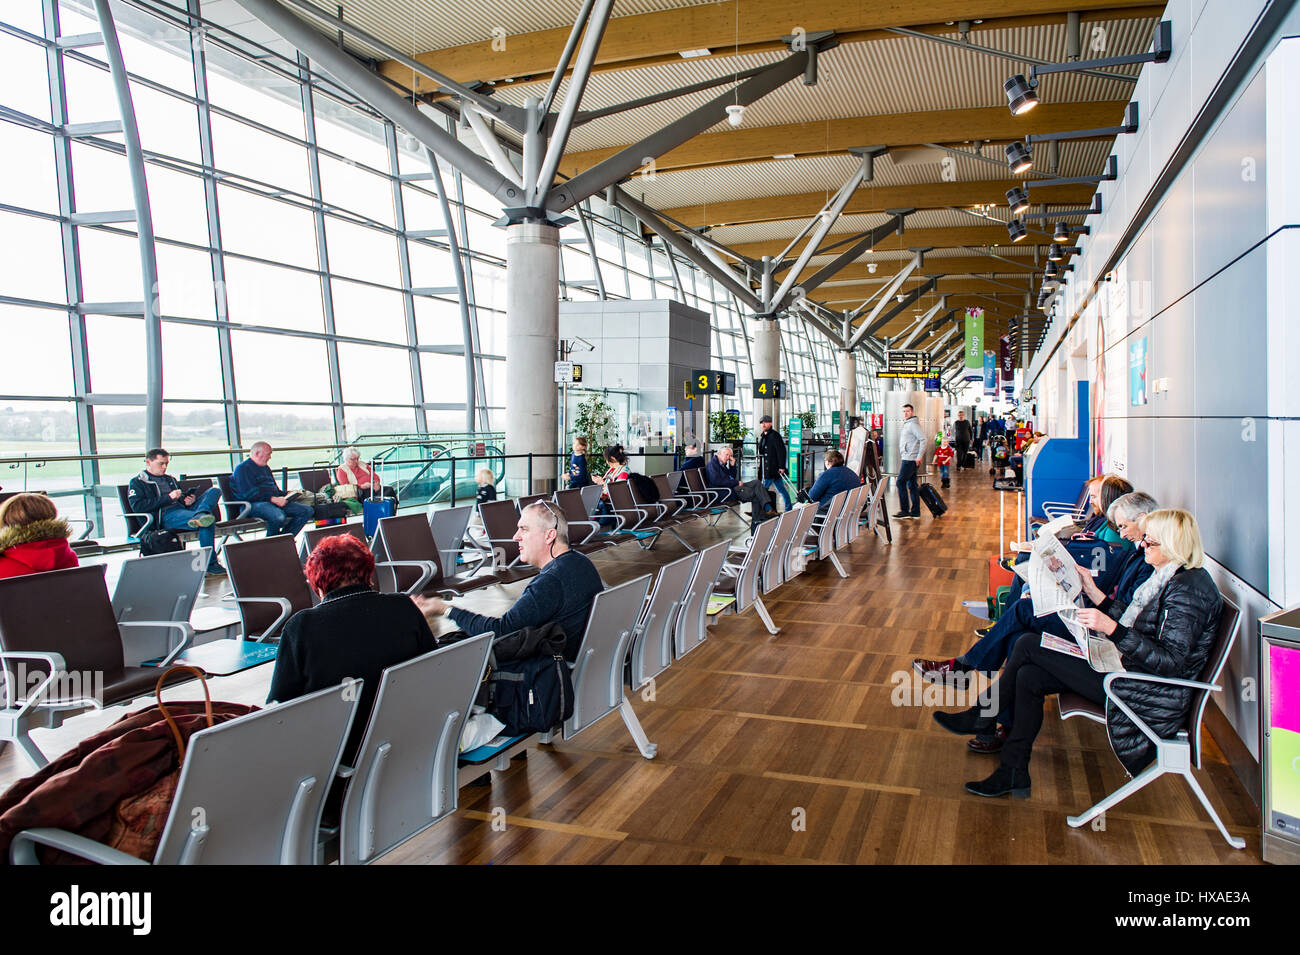 Departures lounge at Cork Airport, Cork, Ireland full of people waiting for their flights. - Stock Image